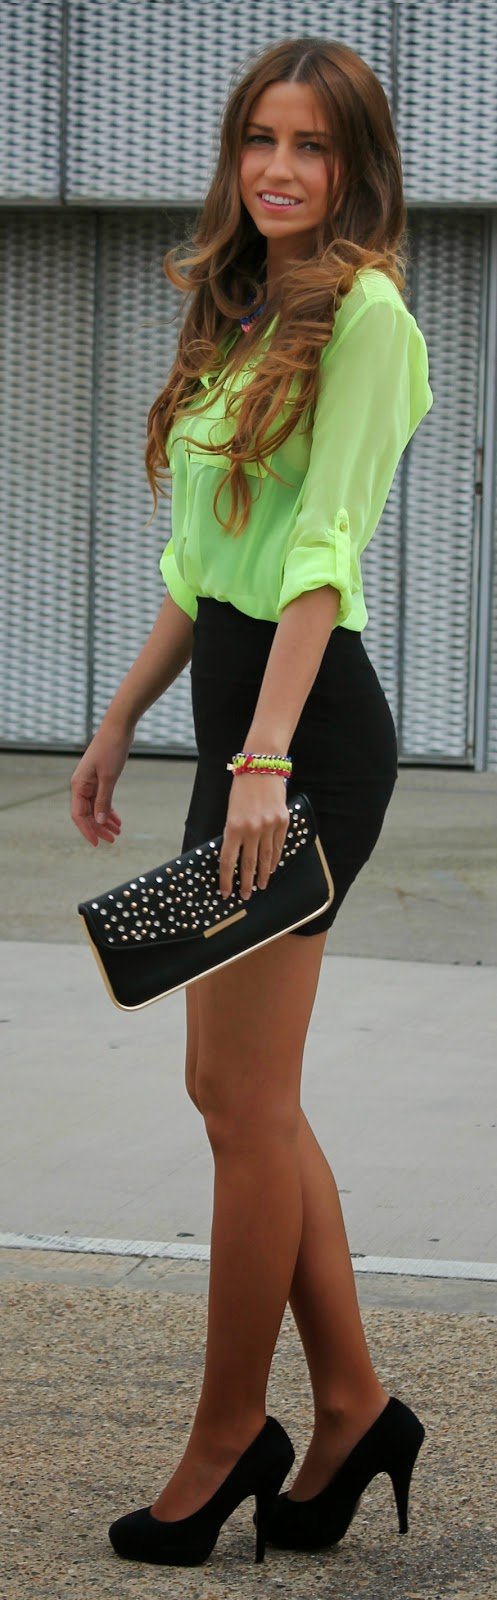 Pop Color Fluor Shirt with Black High Waist Skirt | Chic Summer Outfits